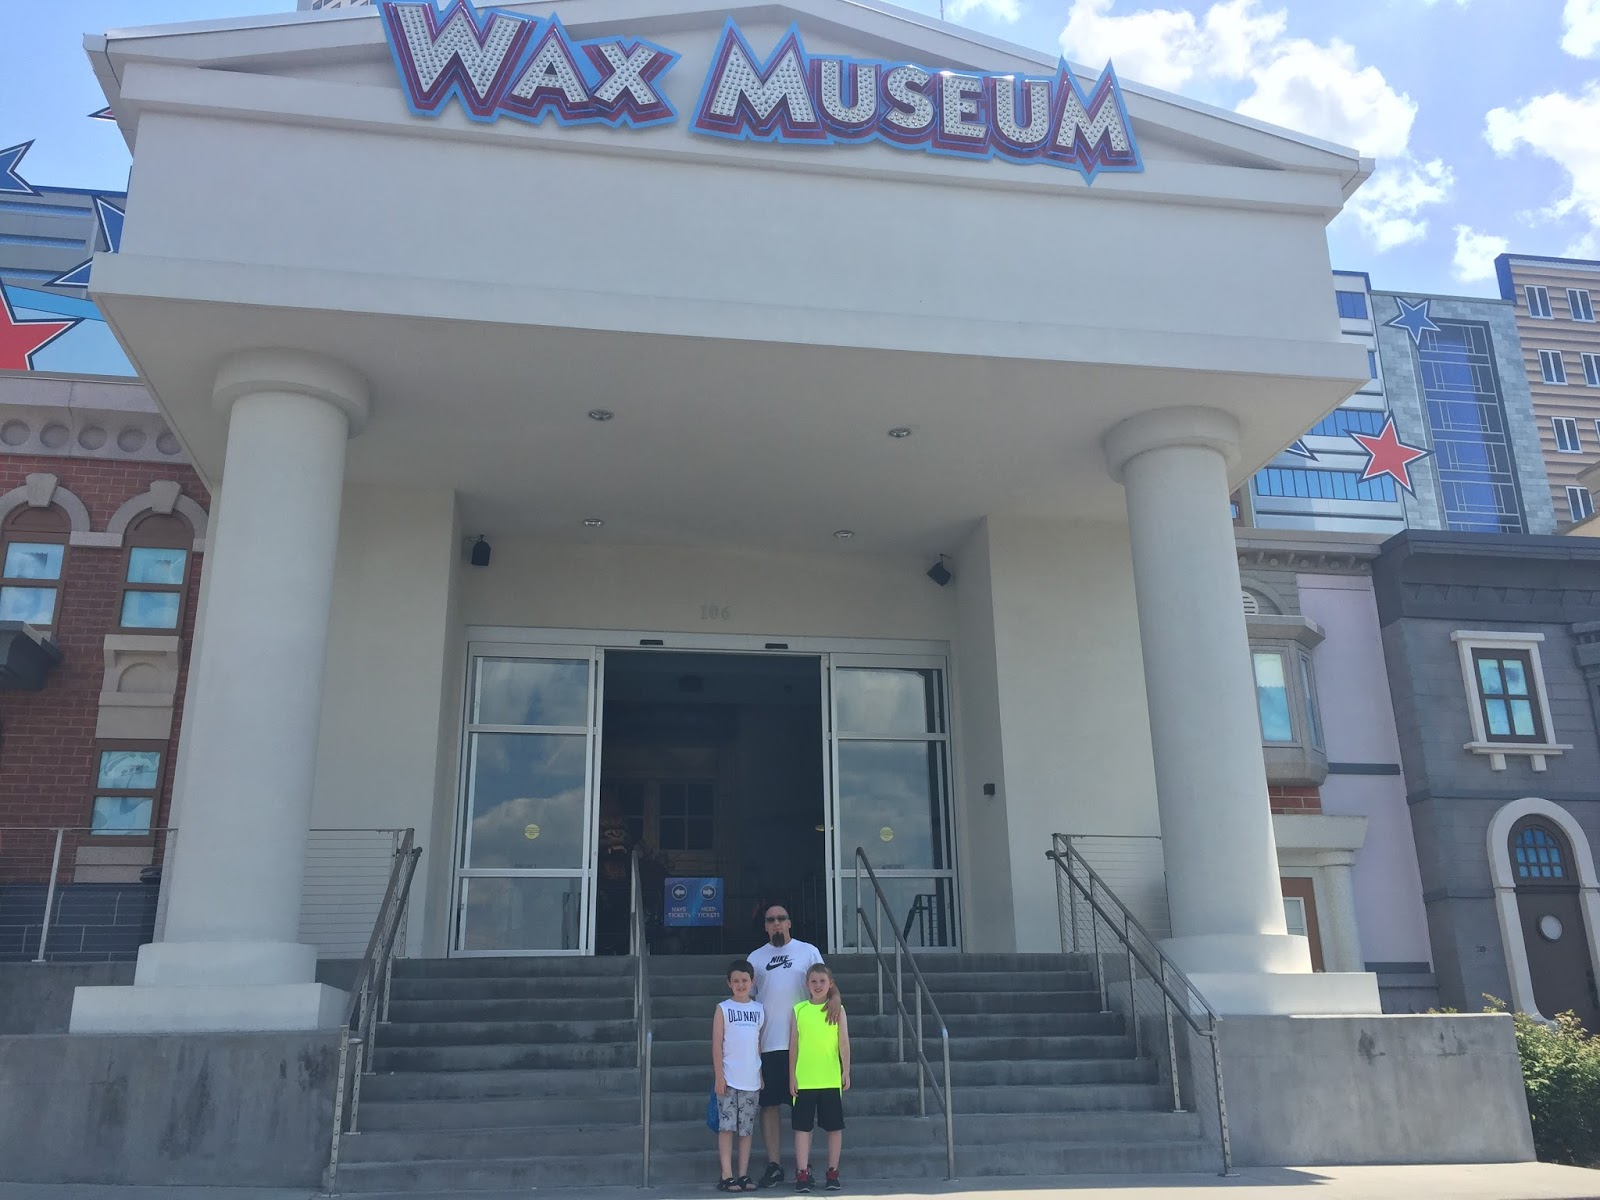 Our Appalachia Homeschool : Hollywood Wax Museum